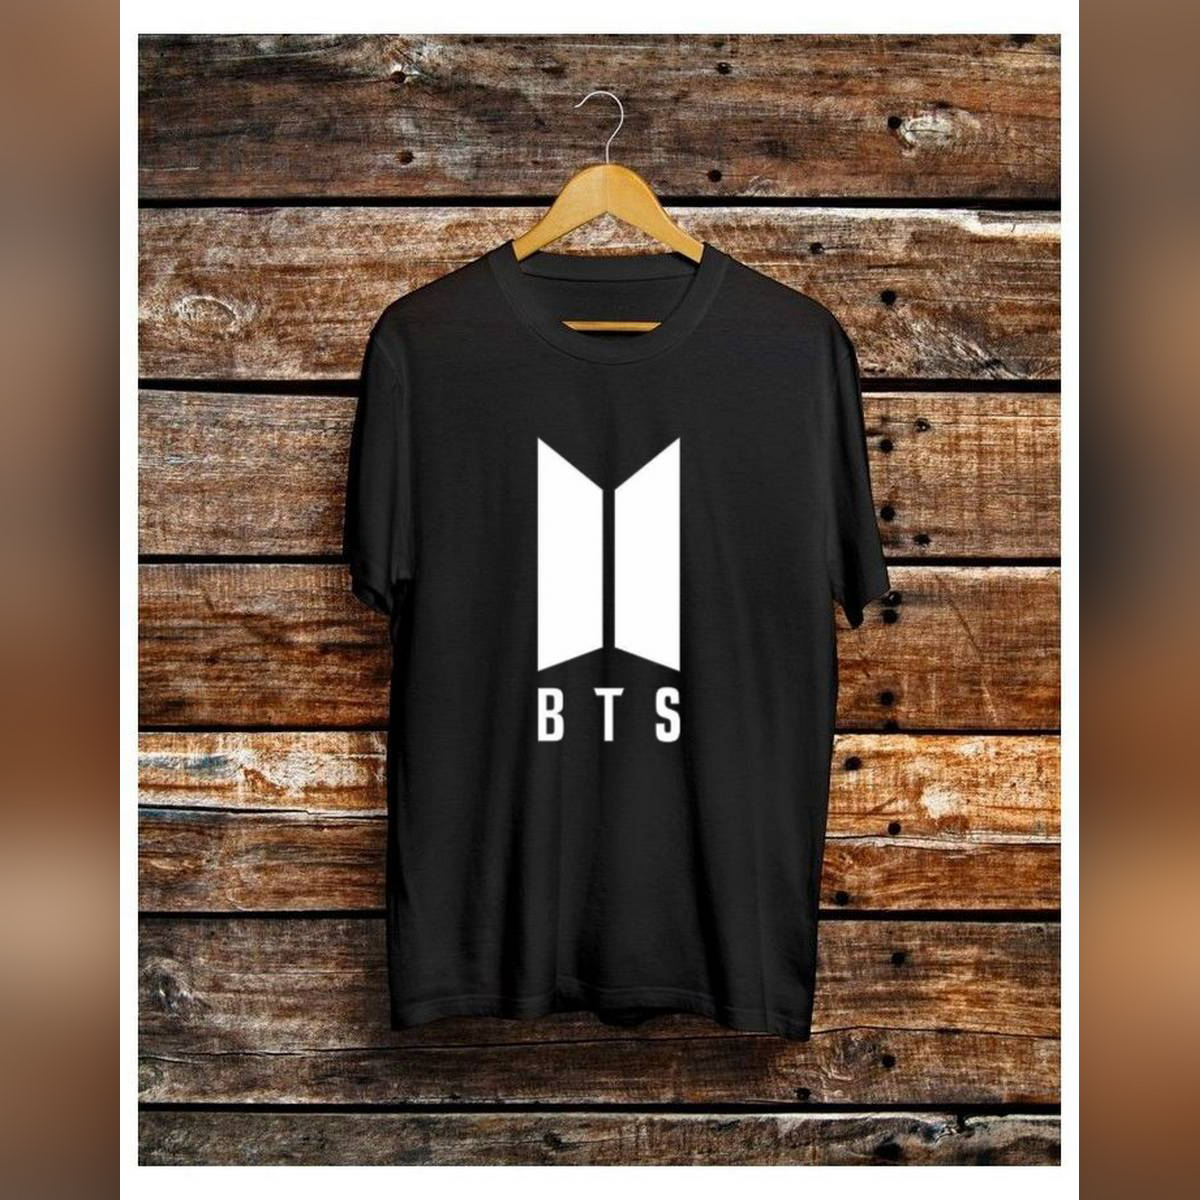 Trendy BTS Theme Tag Print Black Colored Summer Top Half Sleeve Tee Shirt Round Neck Cotton Trendy T-shirt Casual Tshirt Spring Wear Smart Fit Half Sleeve Tee Shirt for Women/Girls